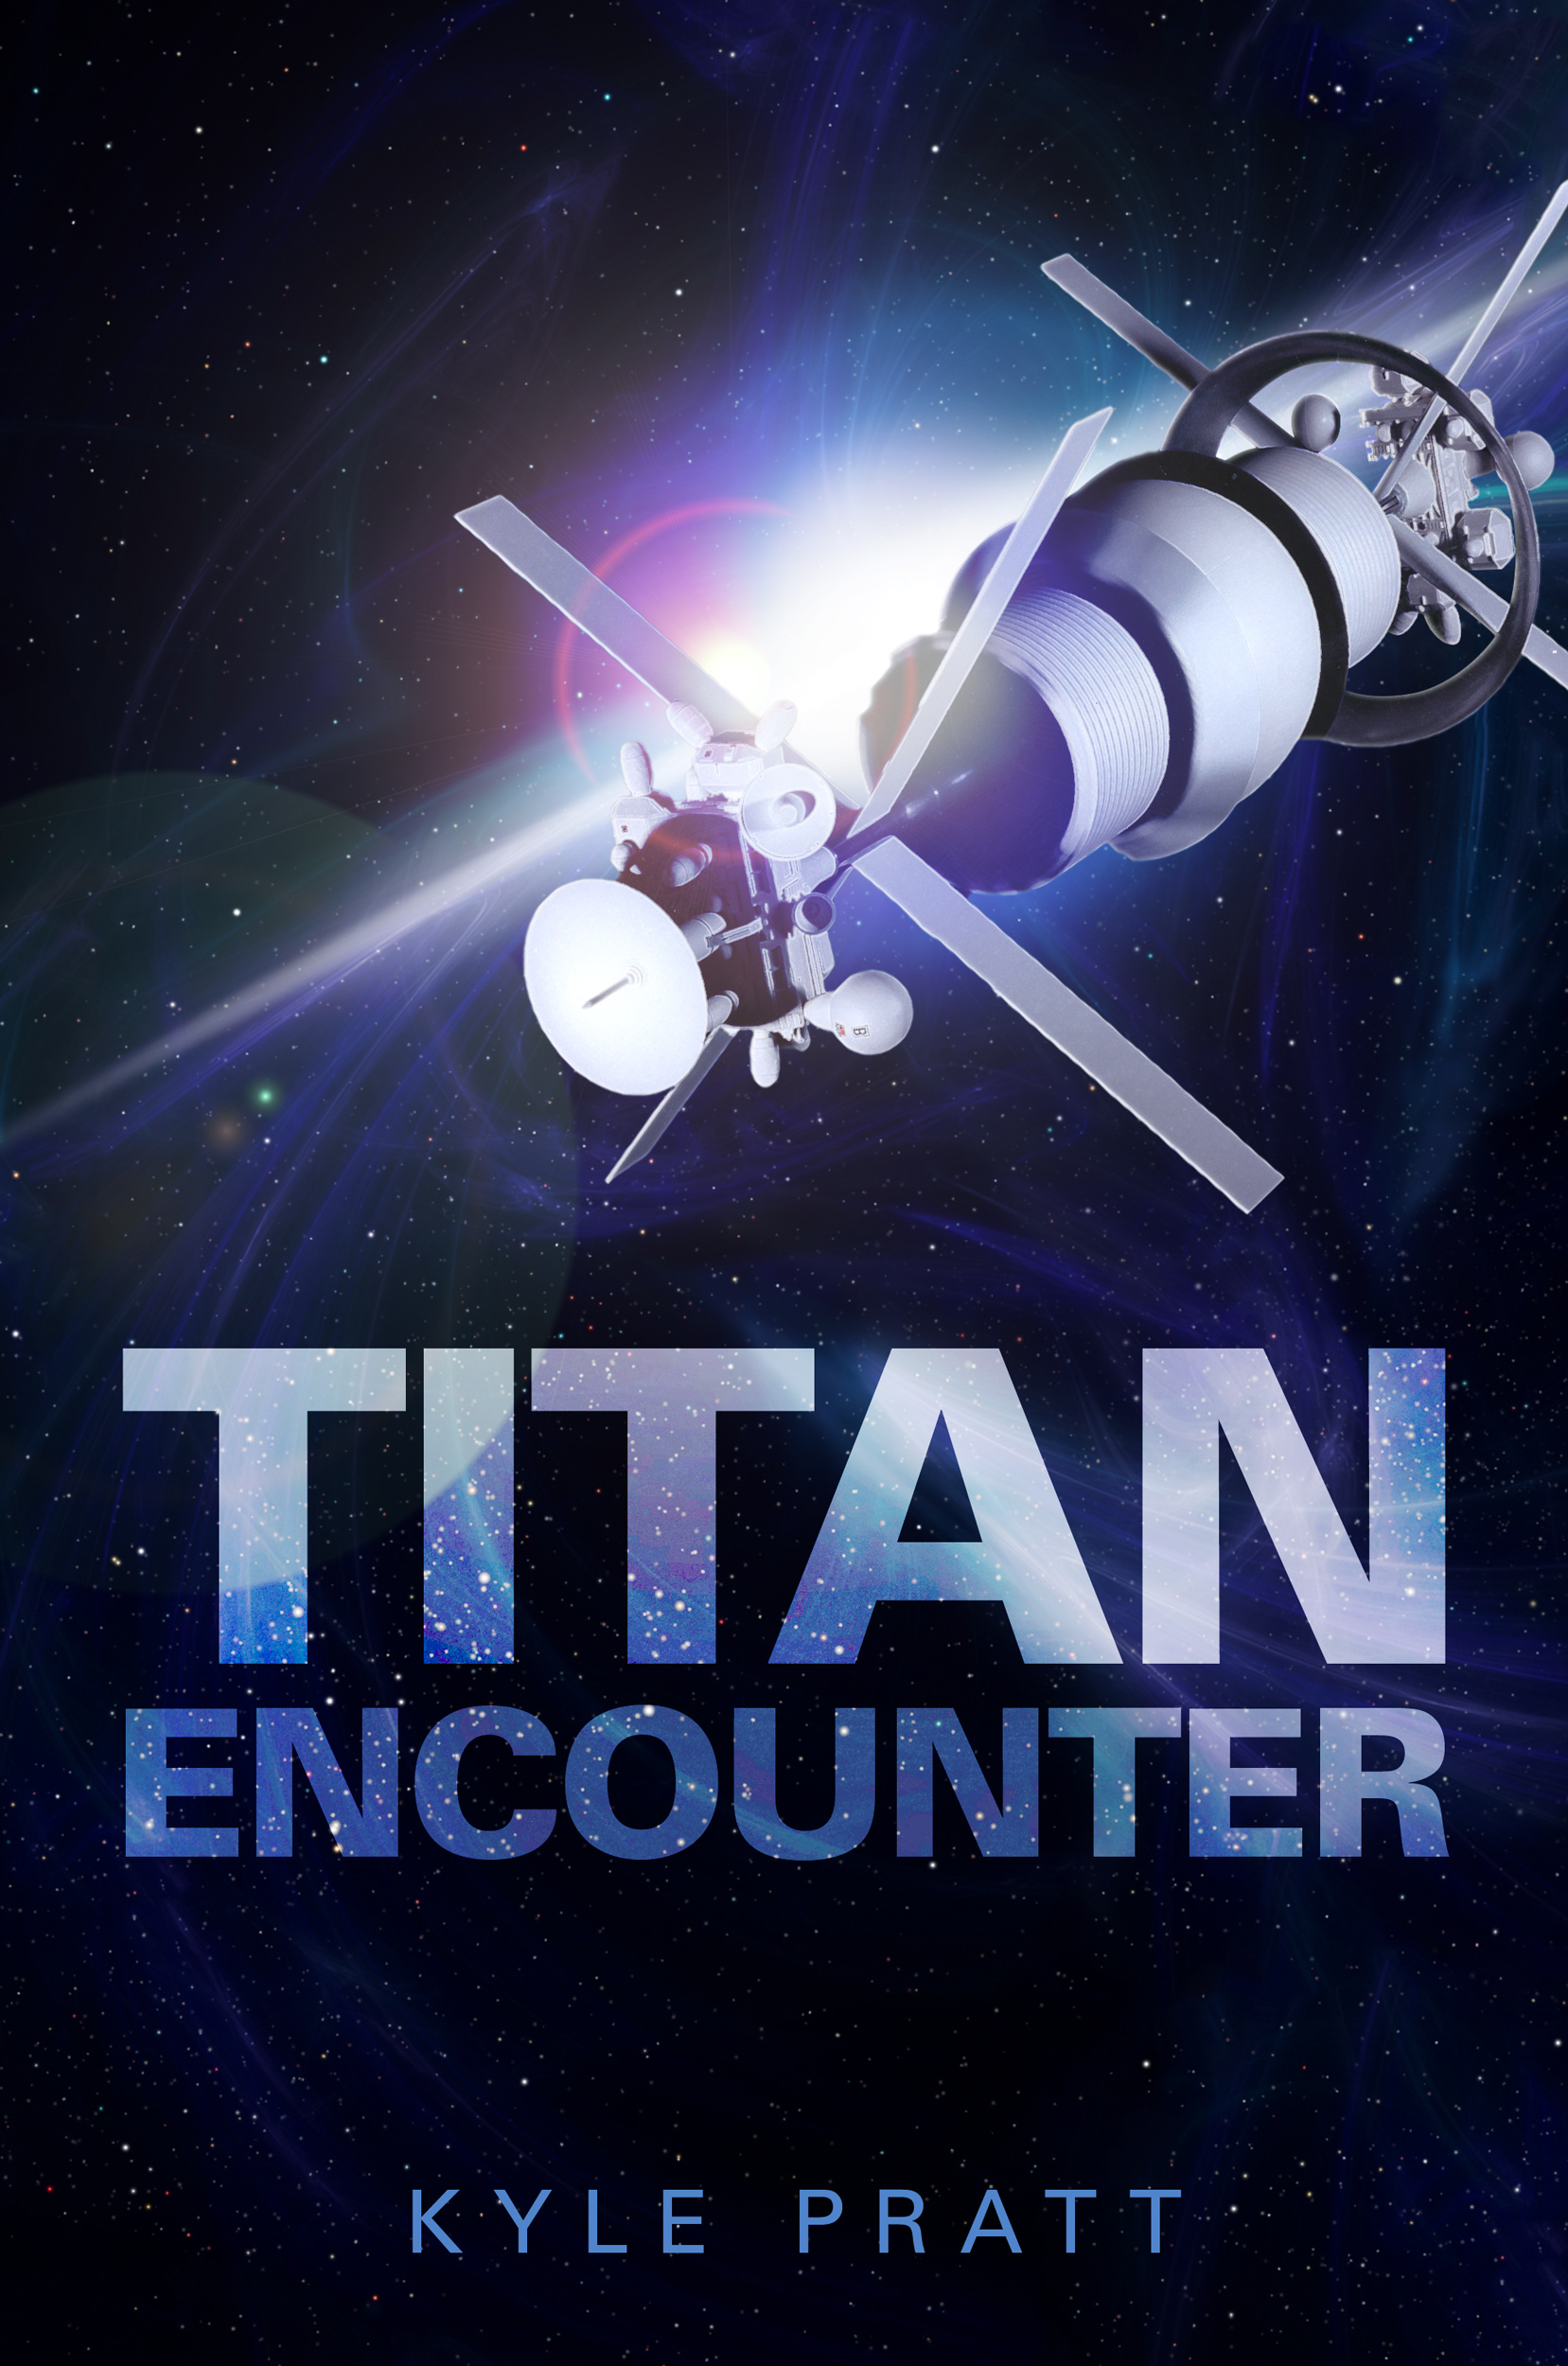 Titan Encounter   Justin starts one morning as a respected businessman and ends the day a fugitive wanted by every power in the known universe. Fleeing with his 'sister' Mara and Naomi, a mysterious woman from Earth Empire, their only hope of refuge is with the Titans, genetically enhanced soldiers who rebelled, and murdered millions in the Titanomachy War. Hunted, even as they hunt for the Titans, the three companions slowly uncover the truth that will change the future and rewrite history.